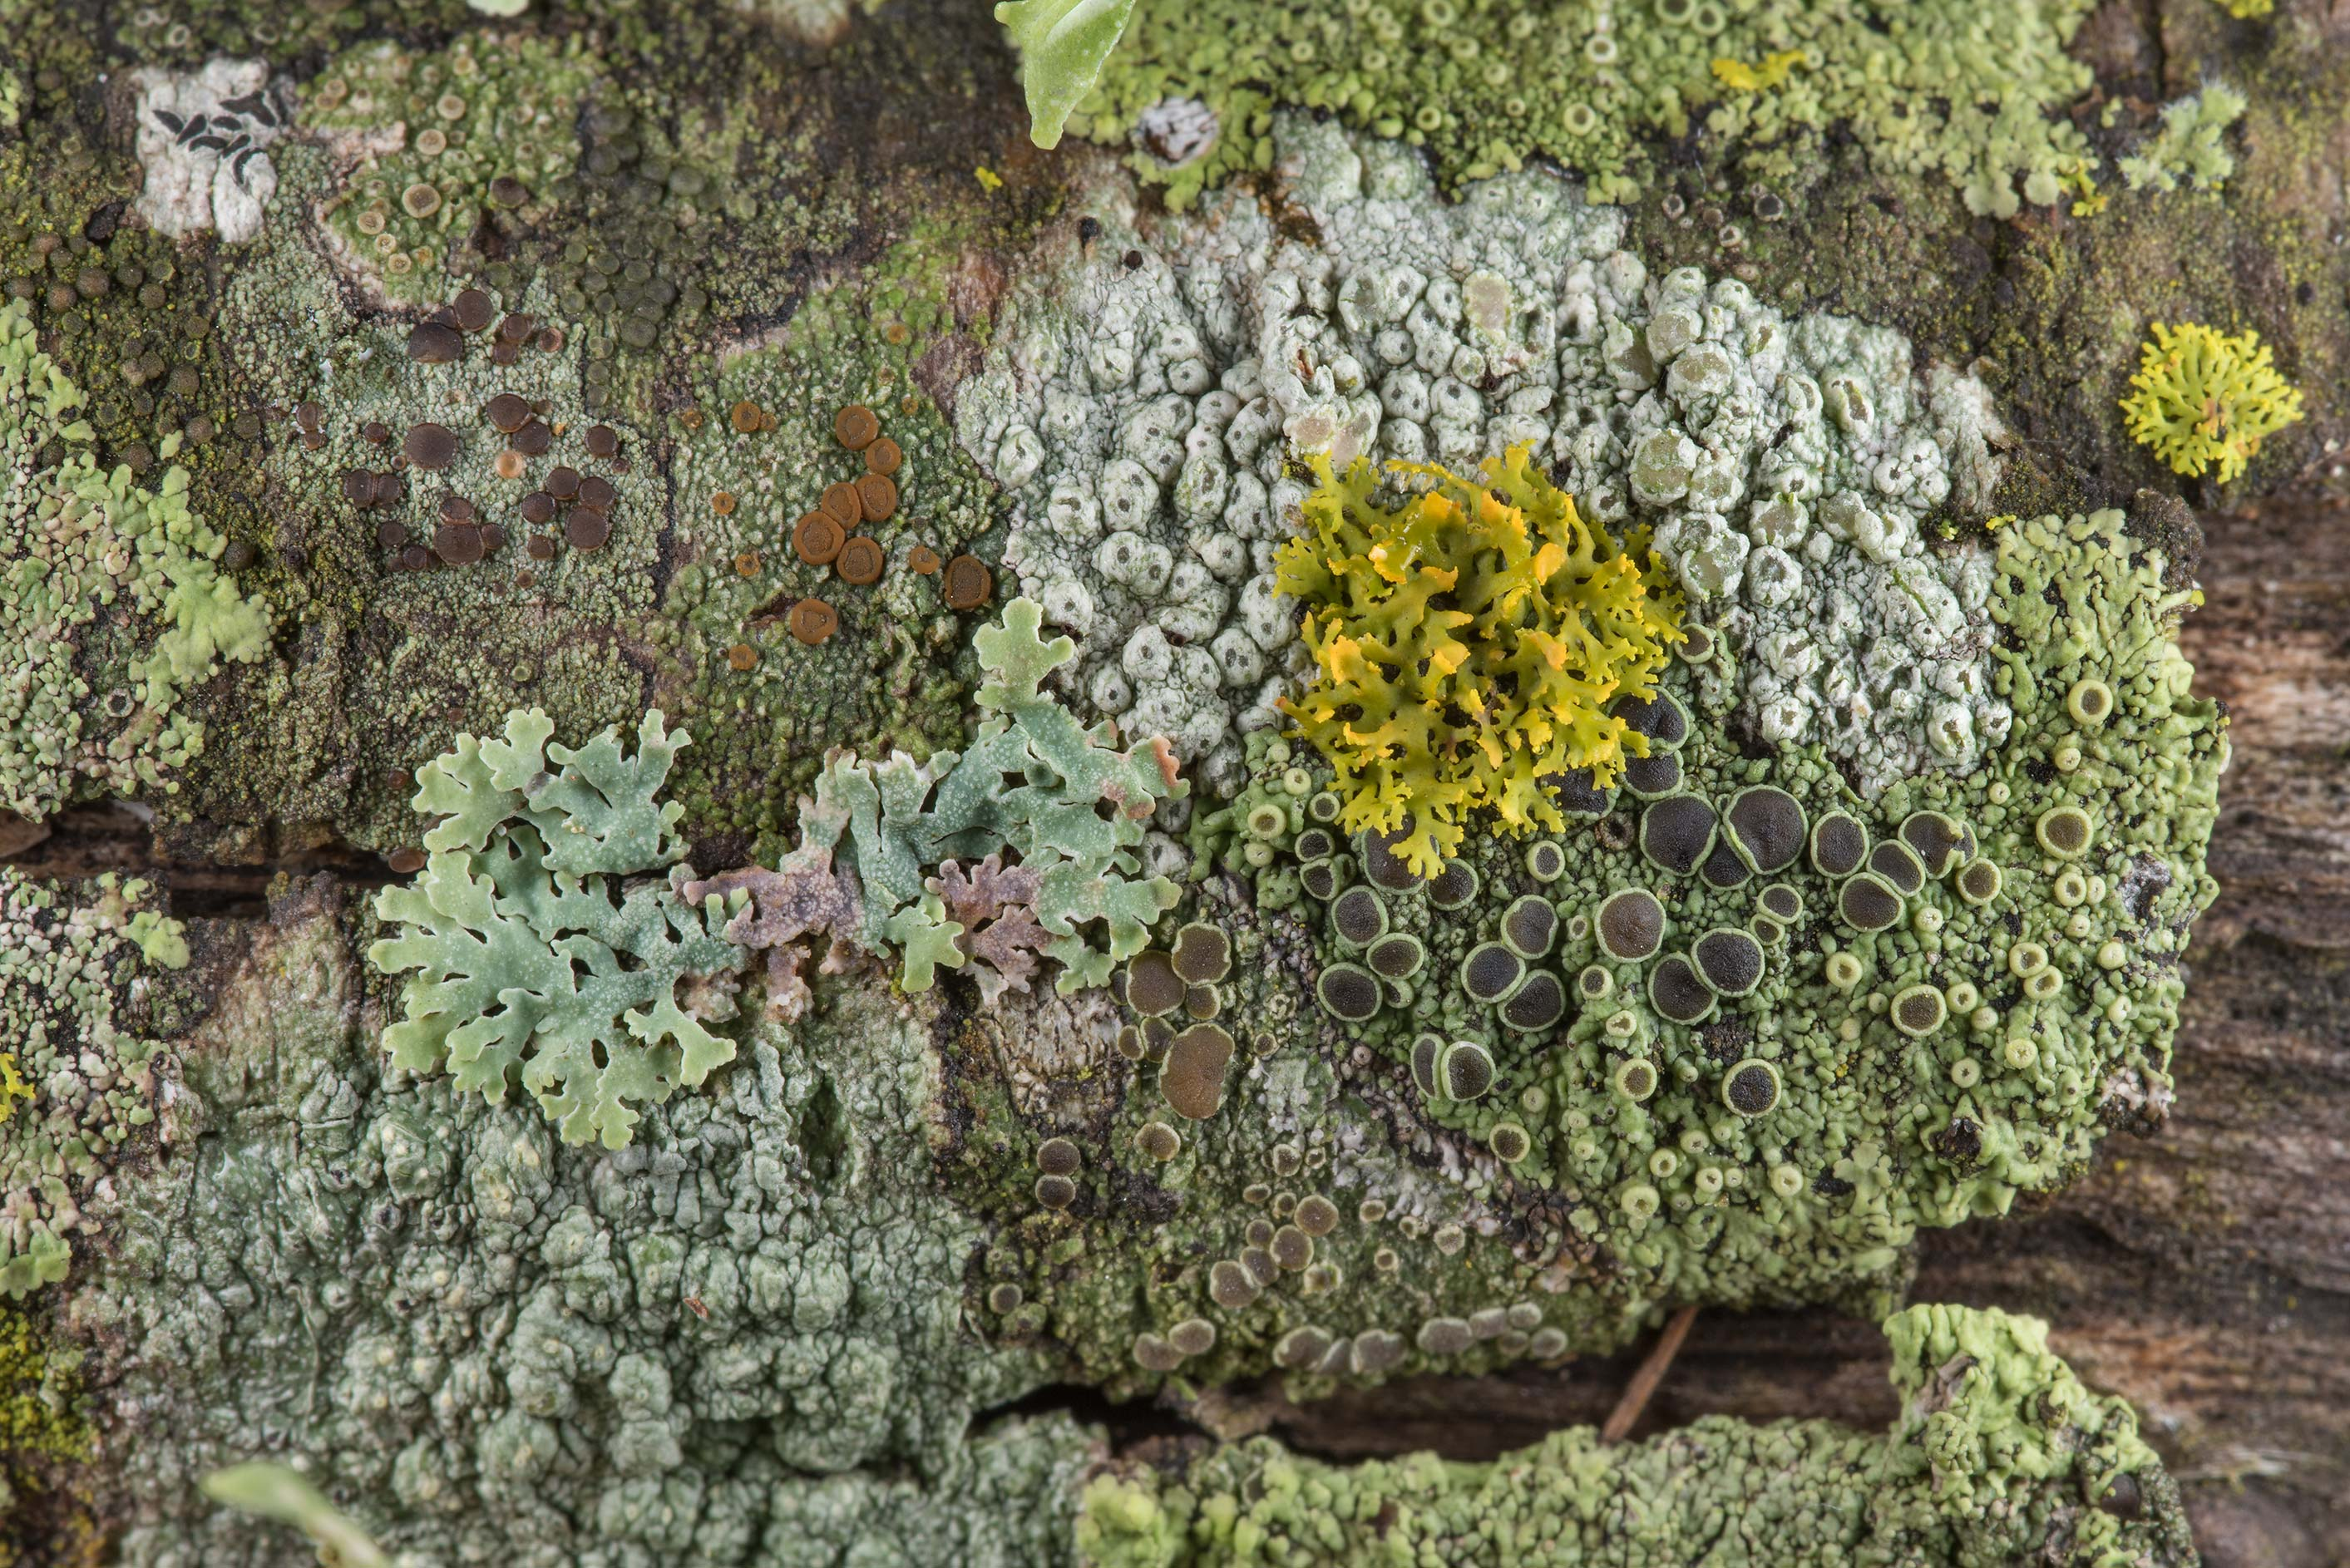 Multicolored lichens covering lower branches of...near Park Hudson Trail. Bryan, Texas